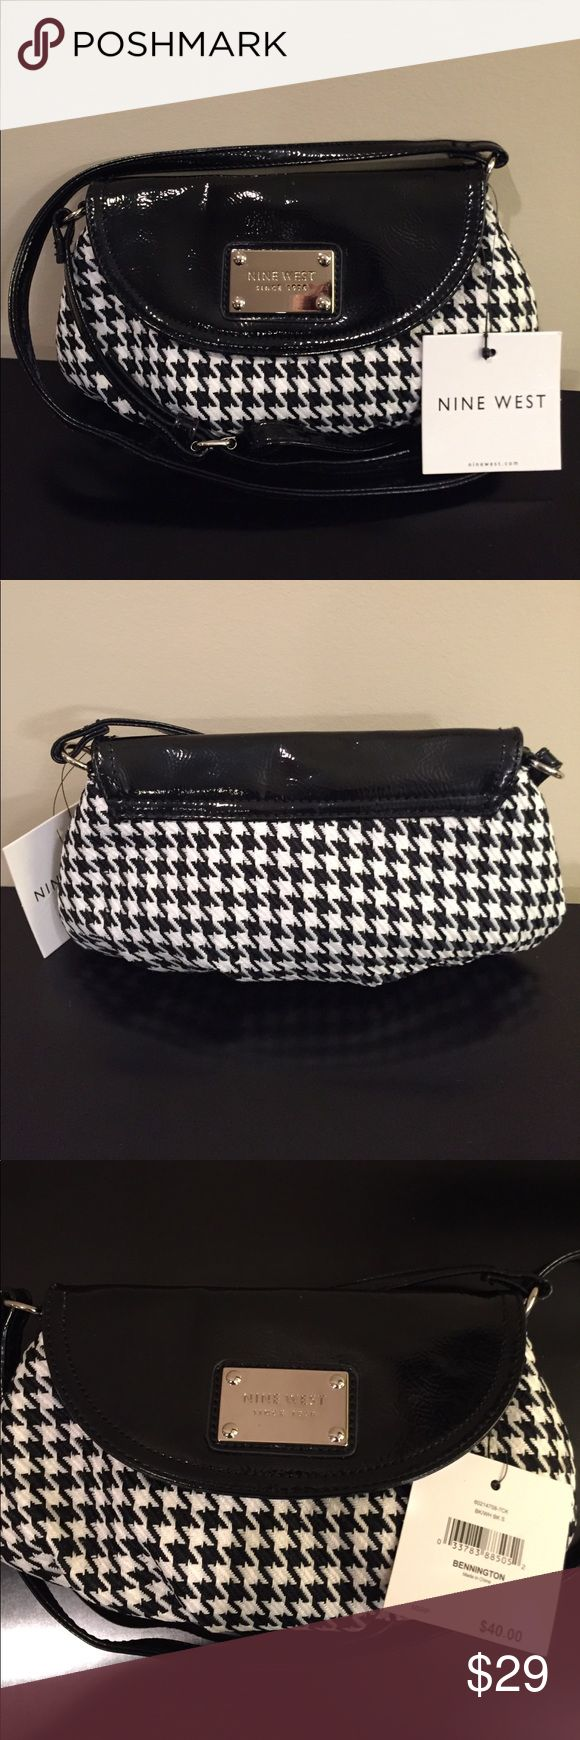 "NINE WEST Houndstooth Crossbody Bag Purse NWT Adorable NINE WEST ""Bennington"" Black & White Houndstooth Crossbody / Shoulder Bag Brand New With Tags Retail Price: $40.00  Size: Small Measures 9.5"" (W) x 5.5"" (H) x 2"" (D) Strap Drop Adjusts From 20"" - 22.5"" Long Fully Lined Interior With One Zippered Pocket Wear As A Shoulder Bag Or Crossbody Style Perfect For Any Time You Want To Carry Your ""Essentials"" Such As Keys, Cell Phone, Cards, Cash, Lipstick, Etc. Items In Bag Shown In Photo #5 Not…"